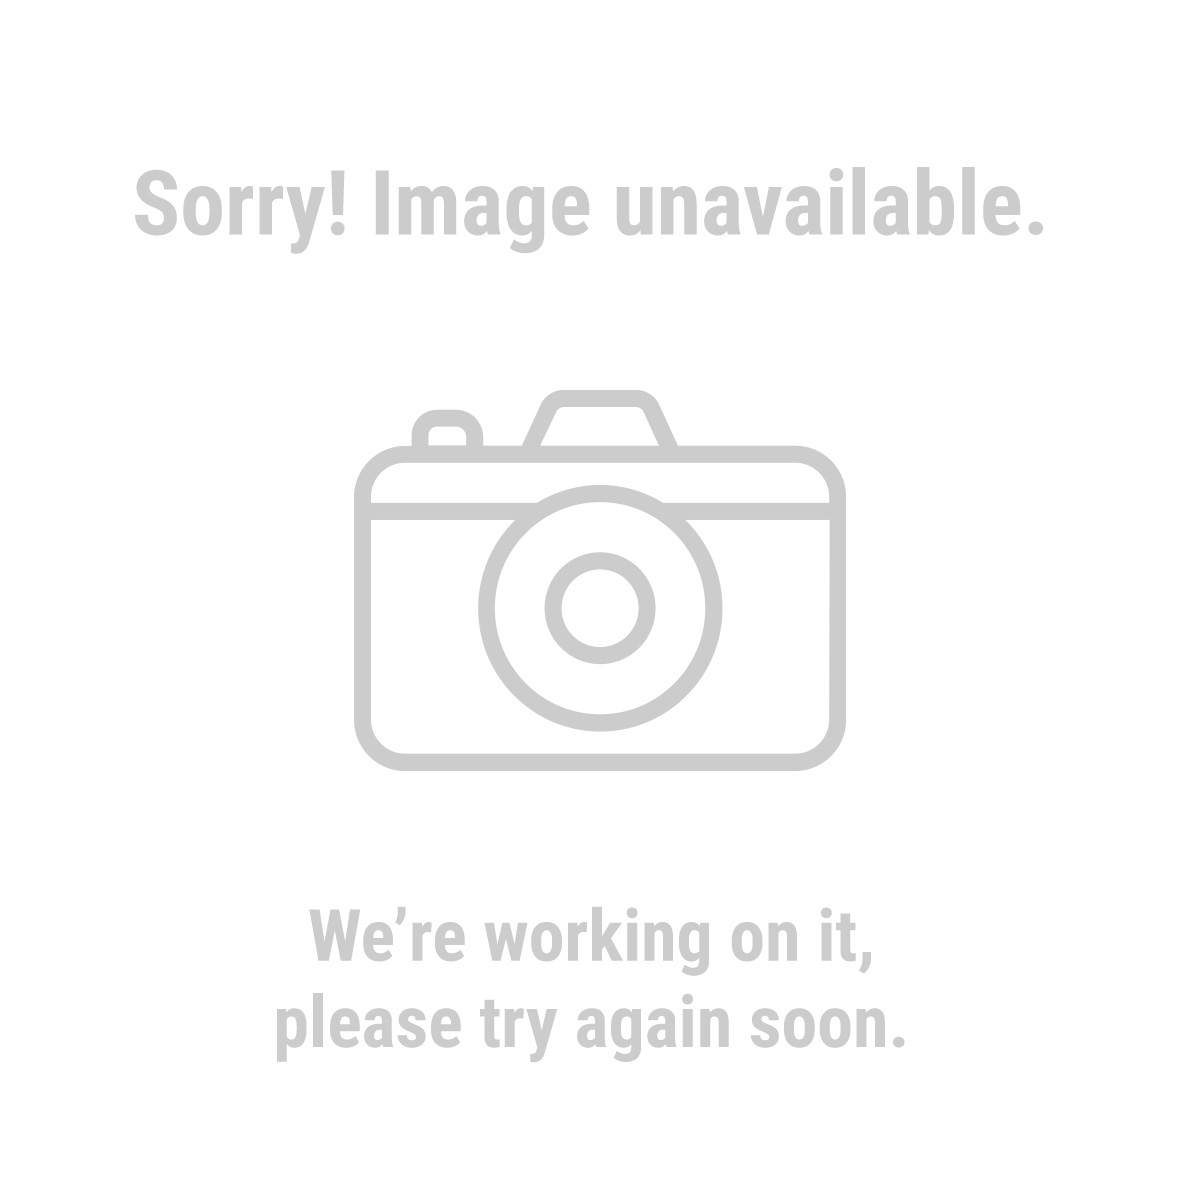 HFT® 61568 125 Volt, 15 Amp Female Plug Connector